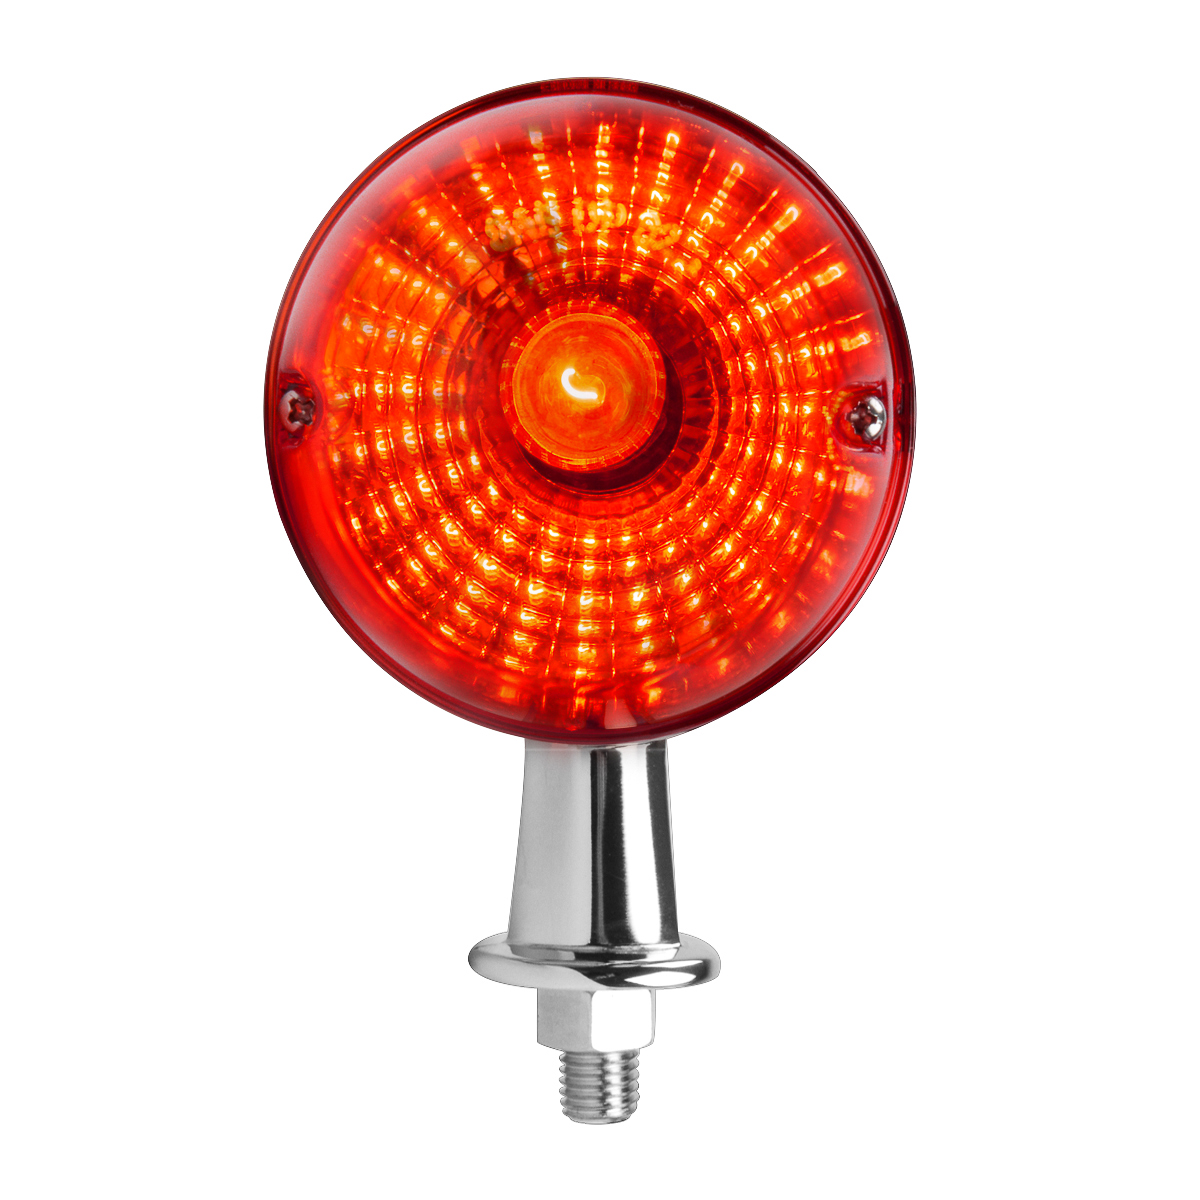 "#78755 2 ⅛"" Honda Marker Red Light"